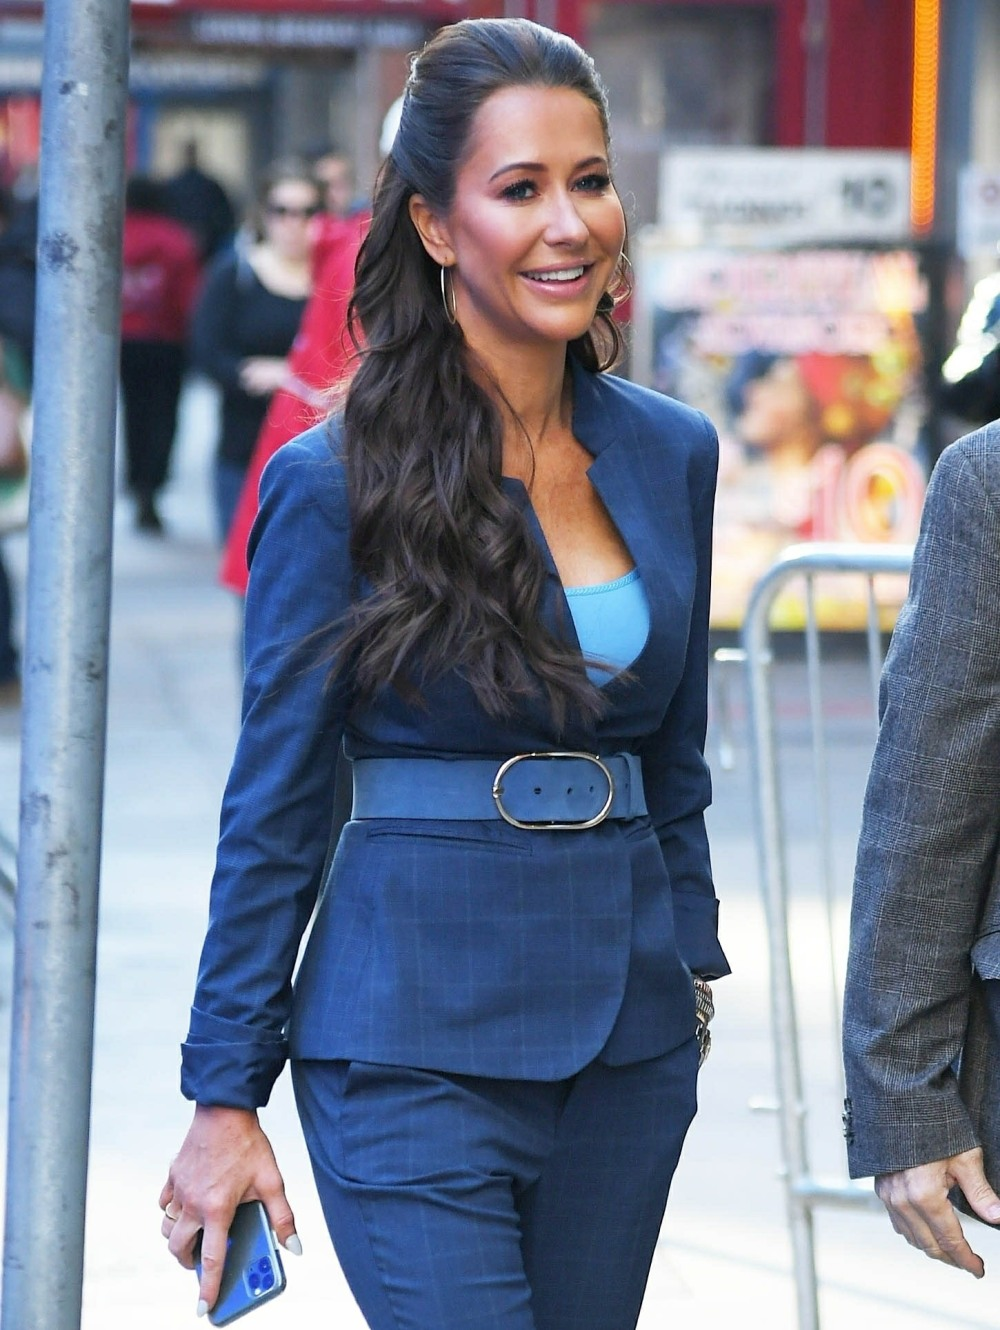 Jessica Mulroney arrives to GMA to help them plan a wedding for one of the viewers